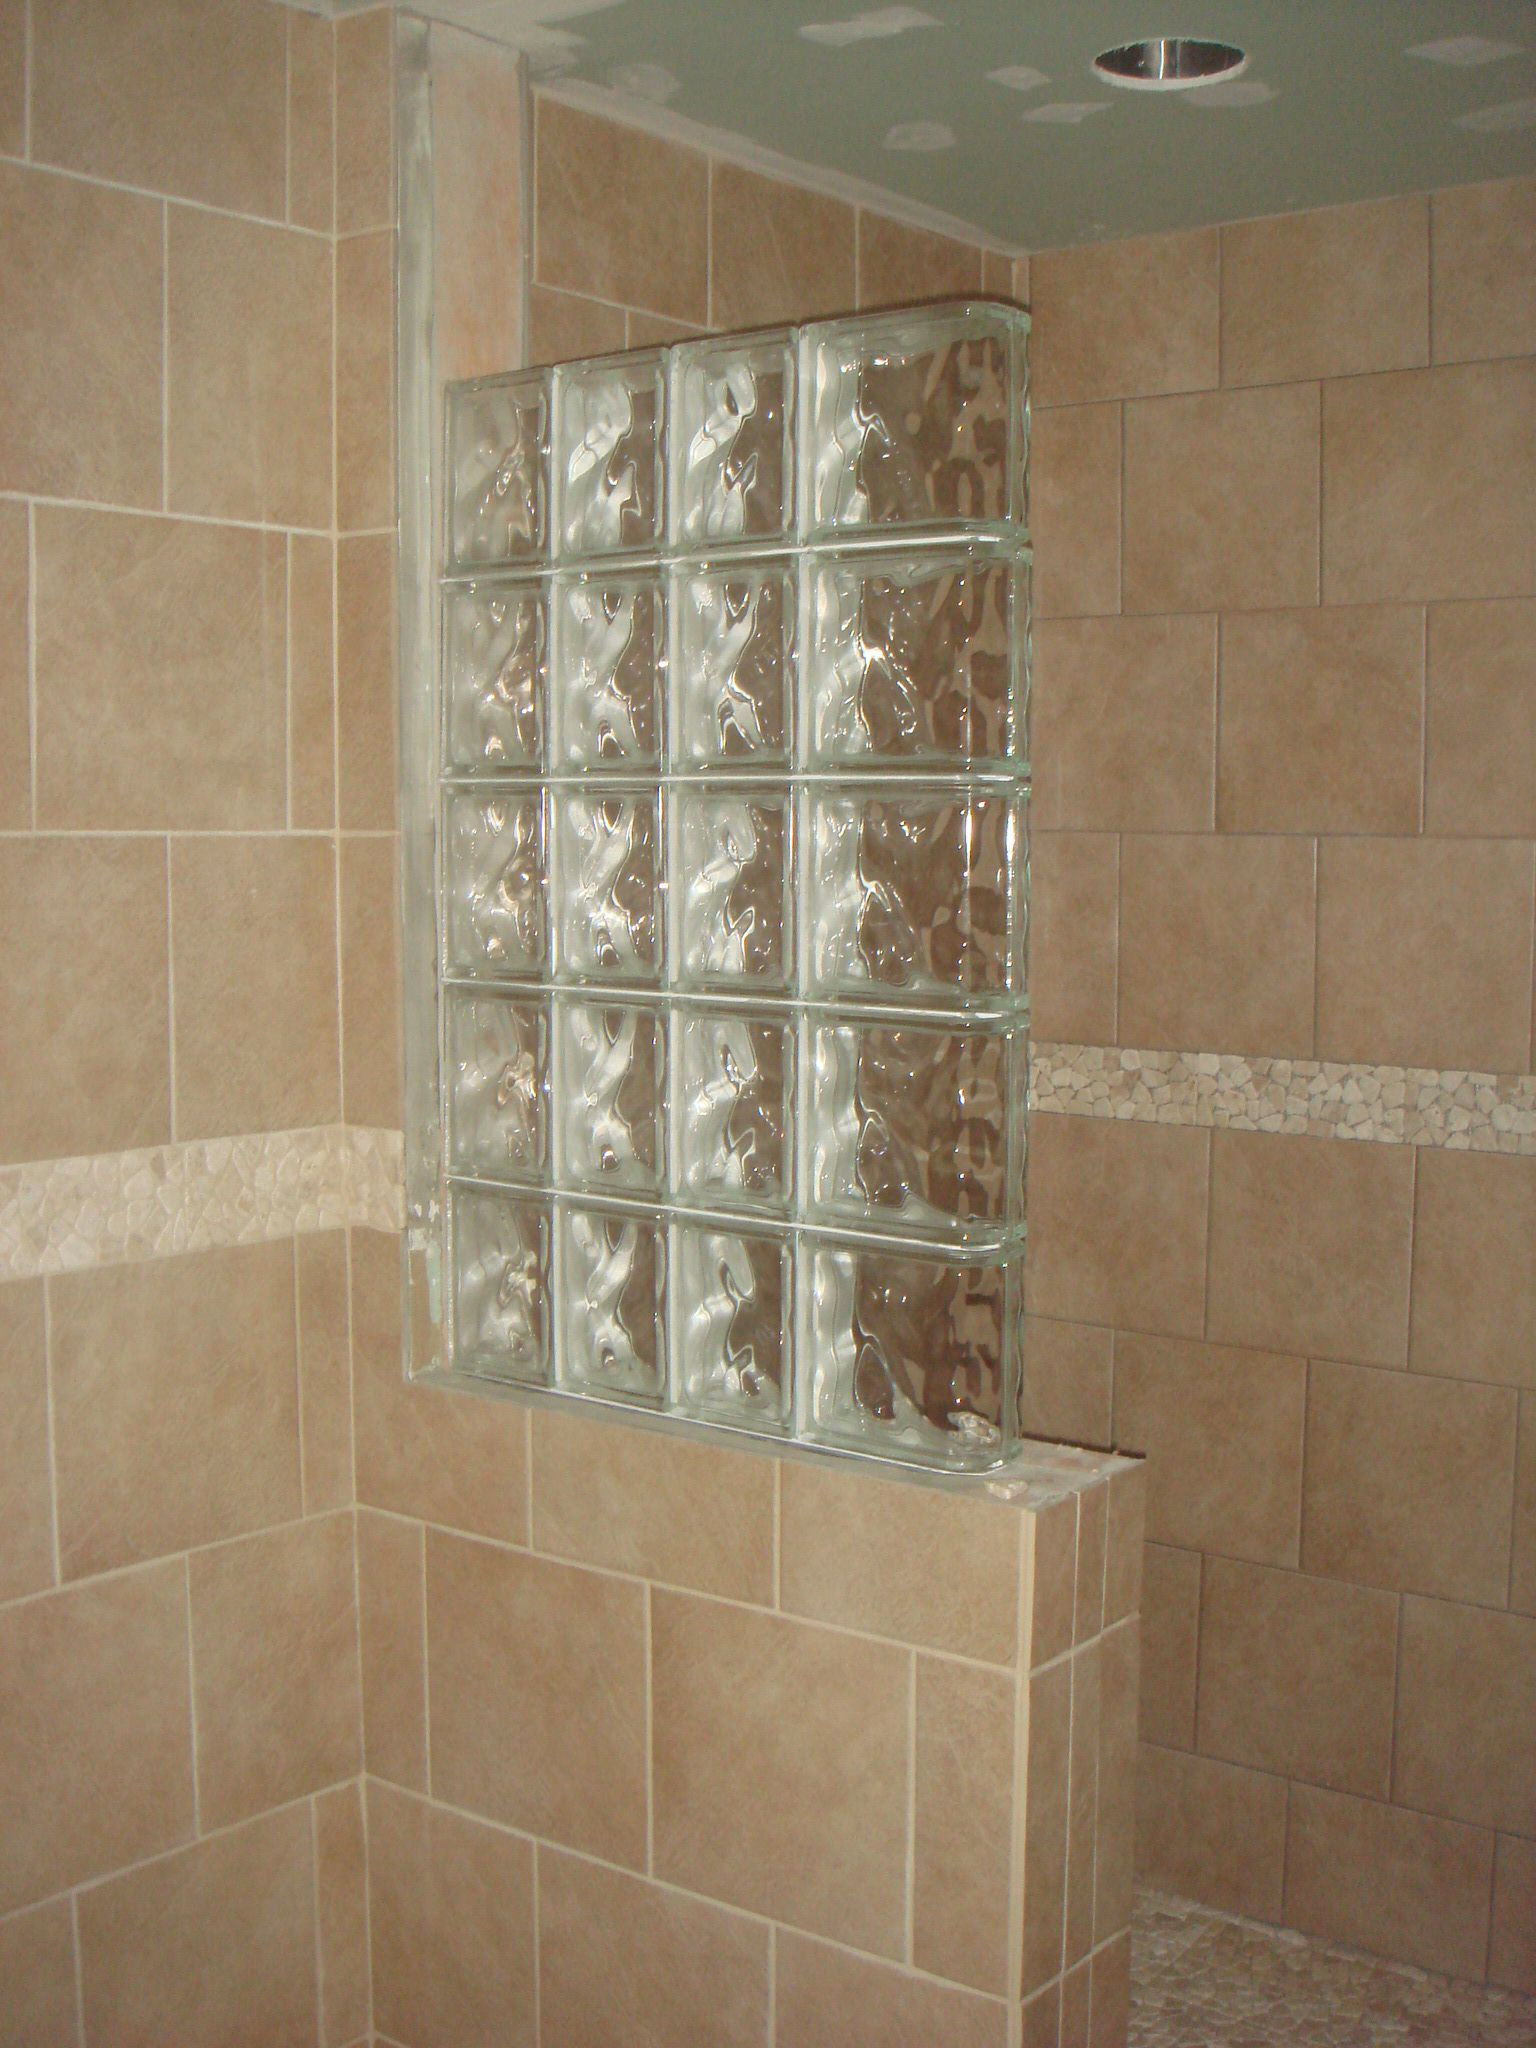 Half Wall Shower Design An Addition Some Glass